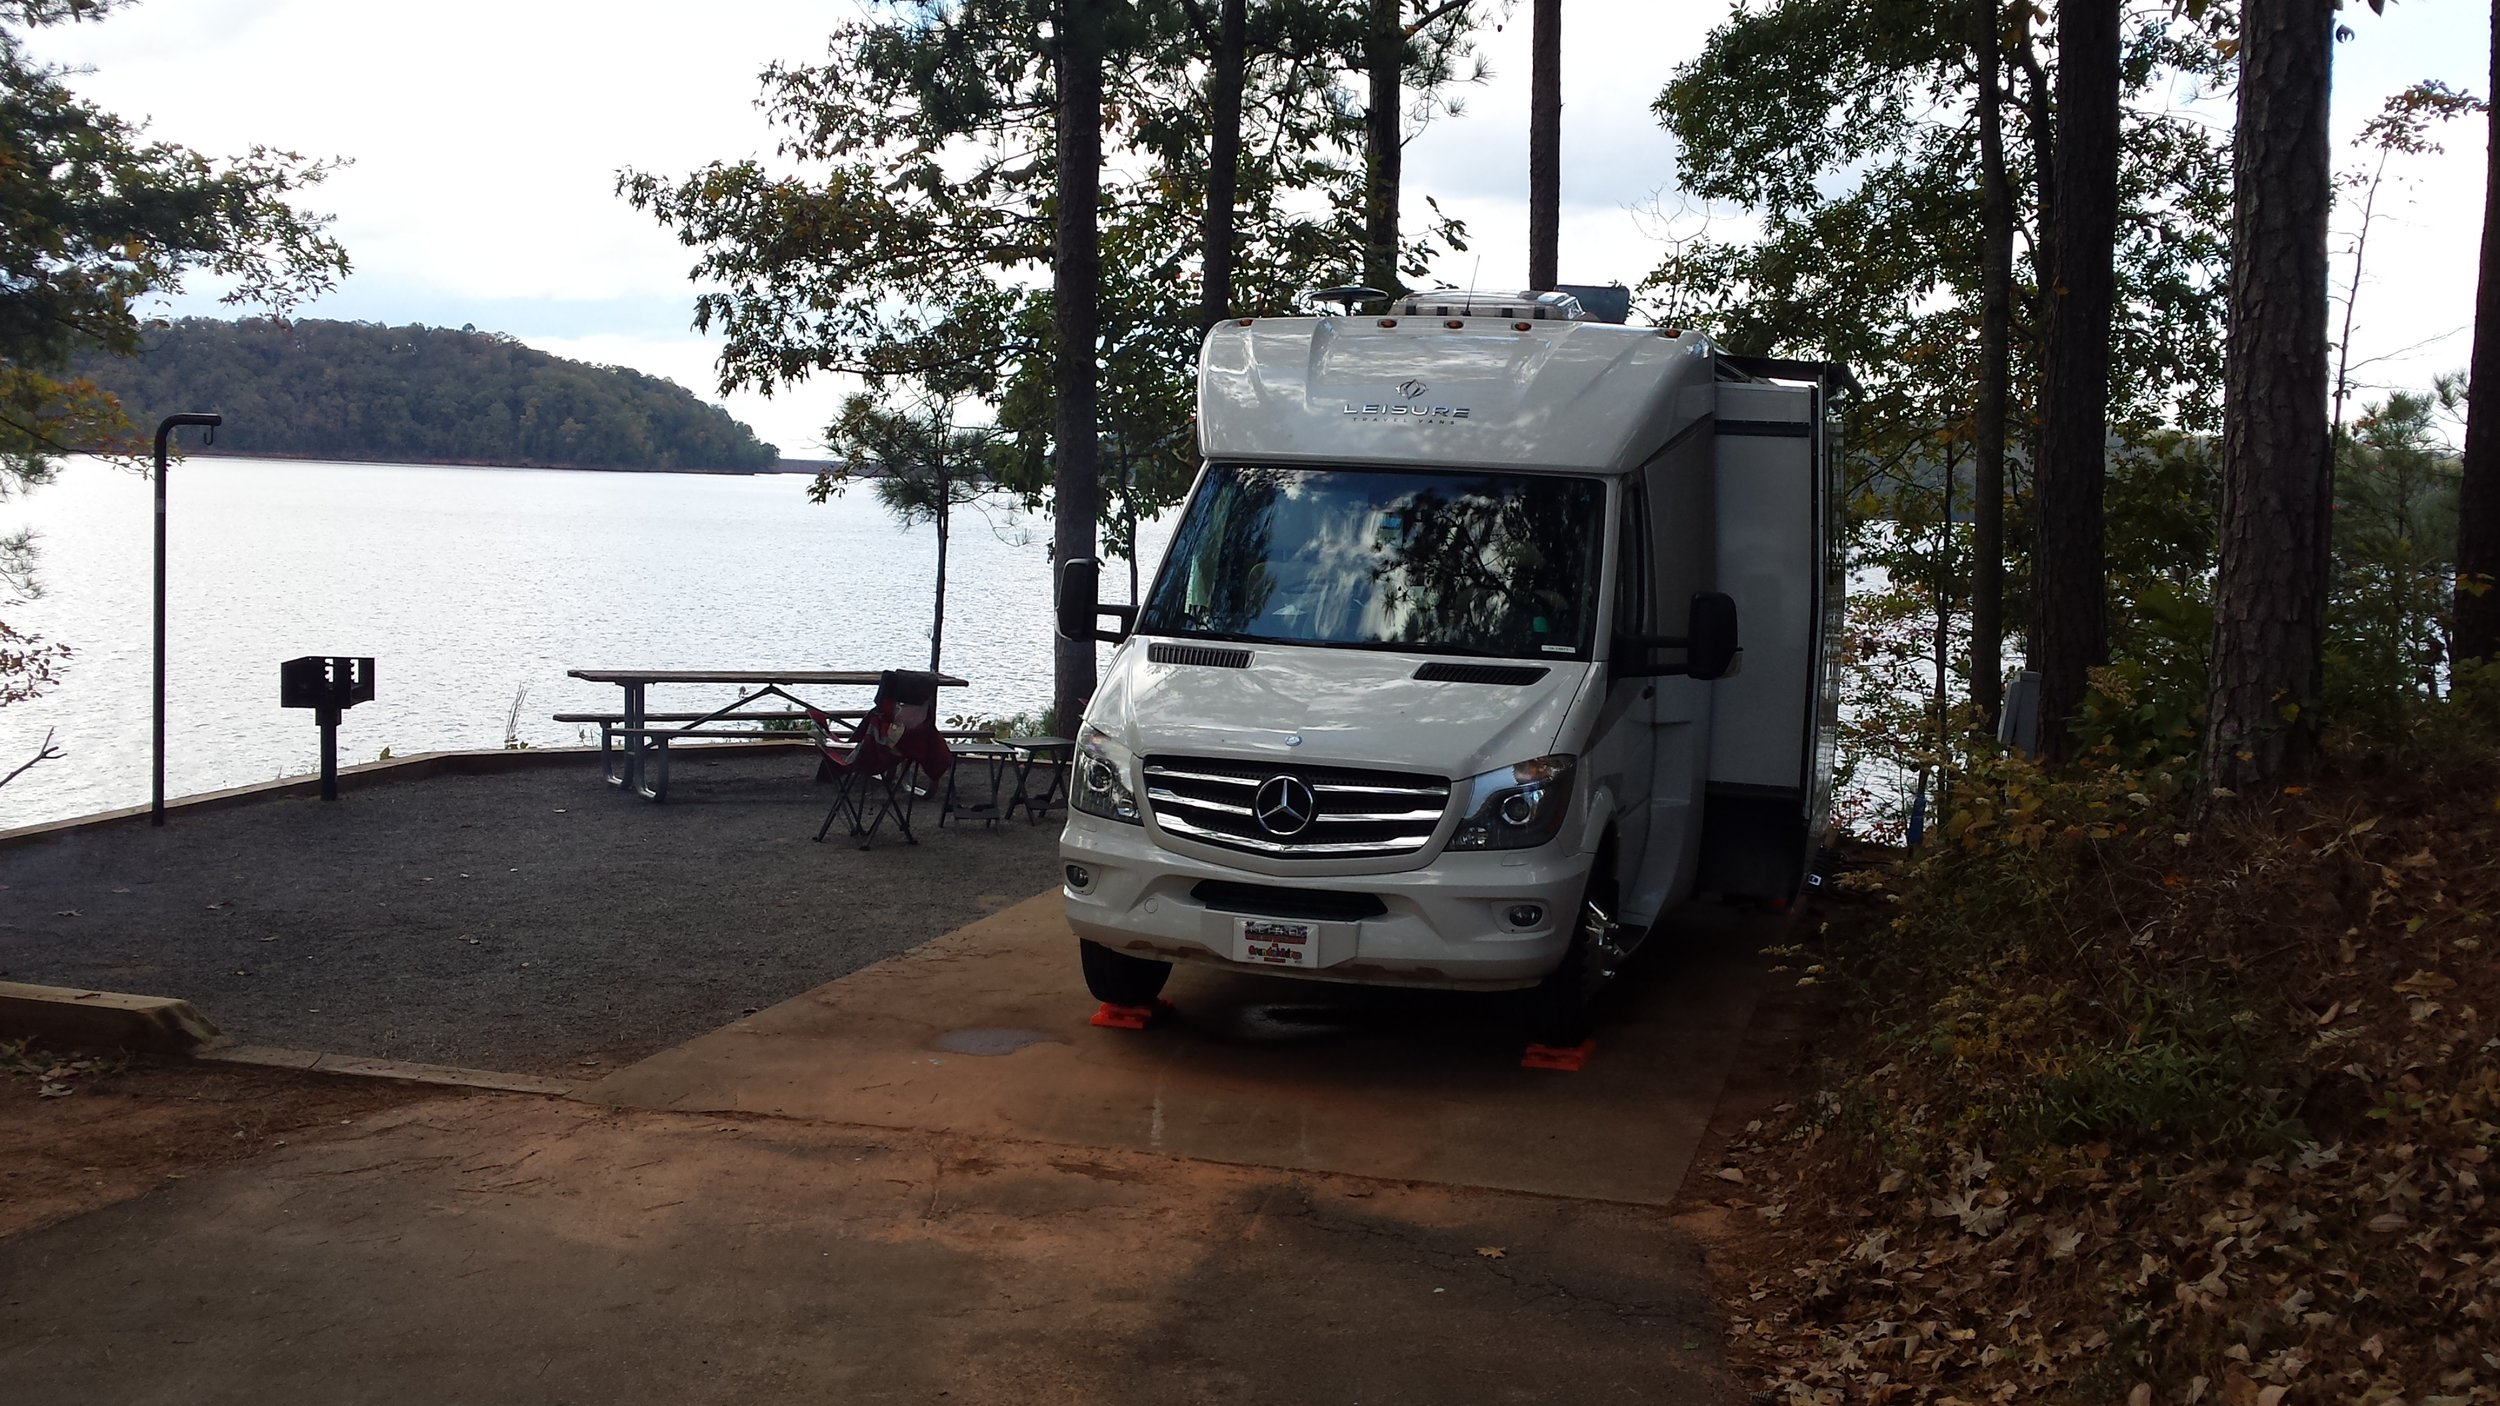 woodring-campground-carter-lake.jpg